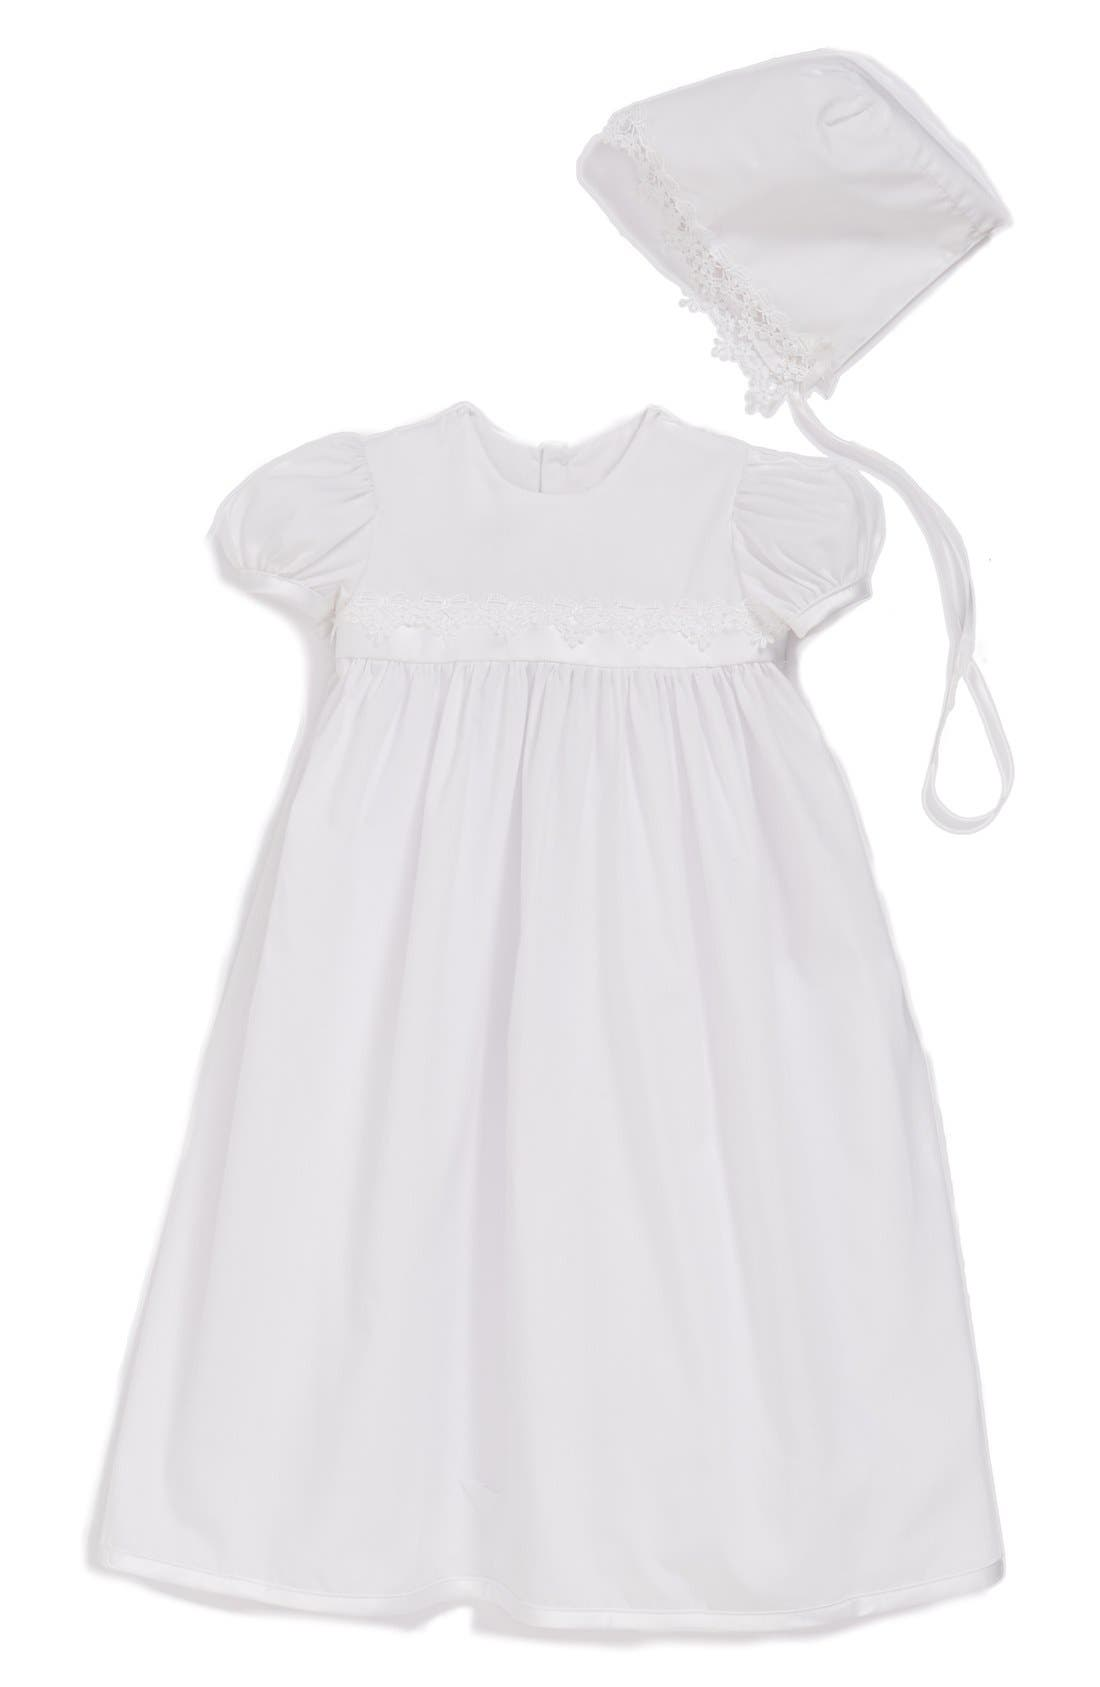 Main Image - Little Things Mean a Lot Christening Gown and Bonnet Set (Baby Girls)